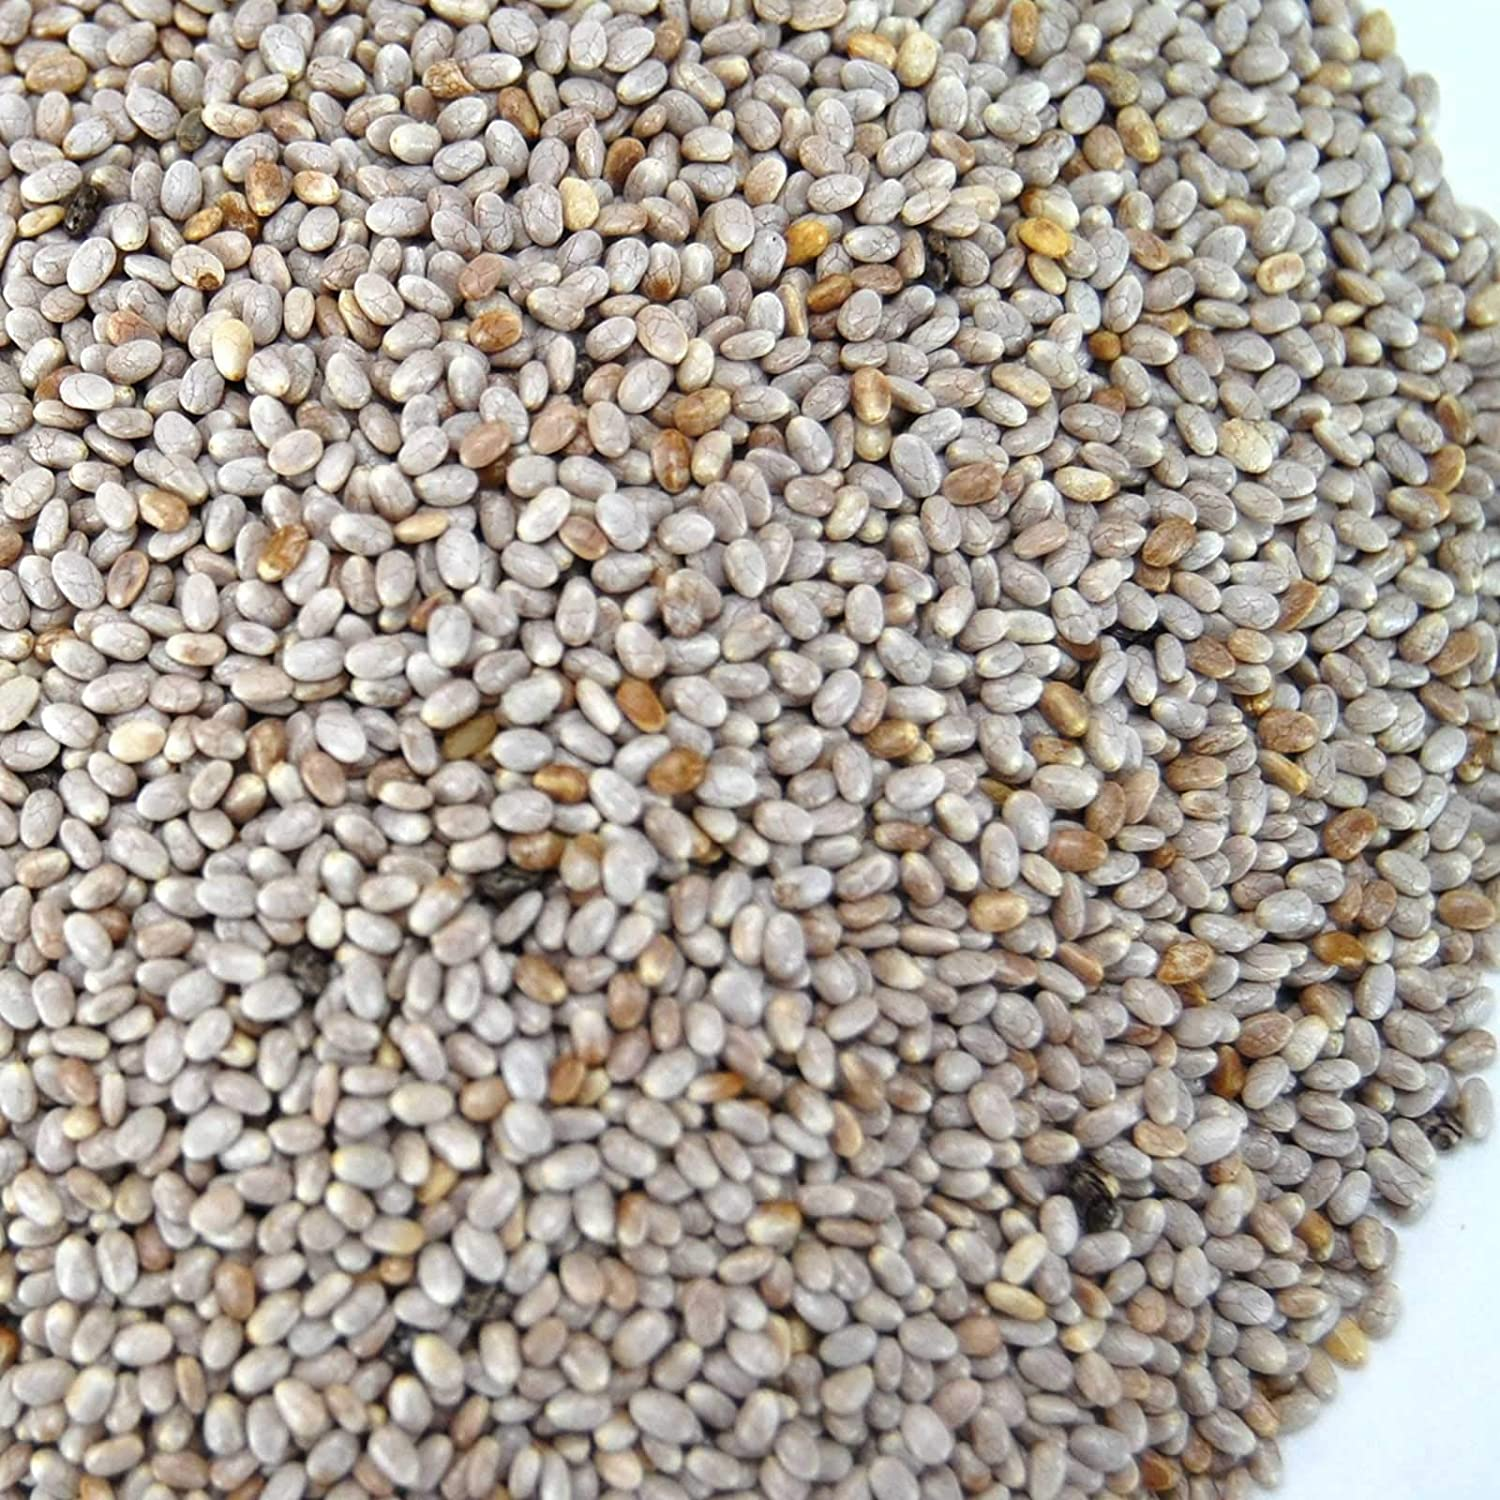 Organic White Chia Seeds- 3 g Packet ~2000 Seeds - Sprouting Seeds for Growing Sprouts, Chia Pet Refills, Food Storage, Sprout Salad